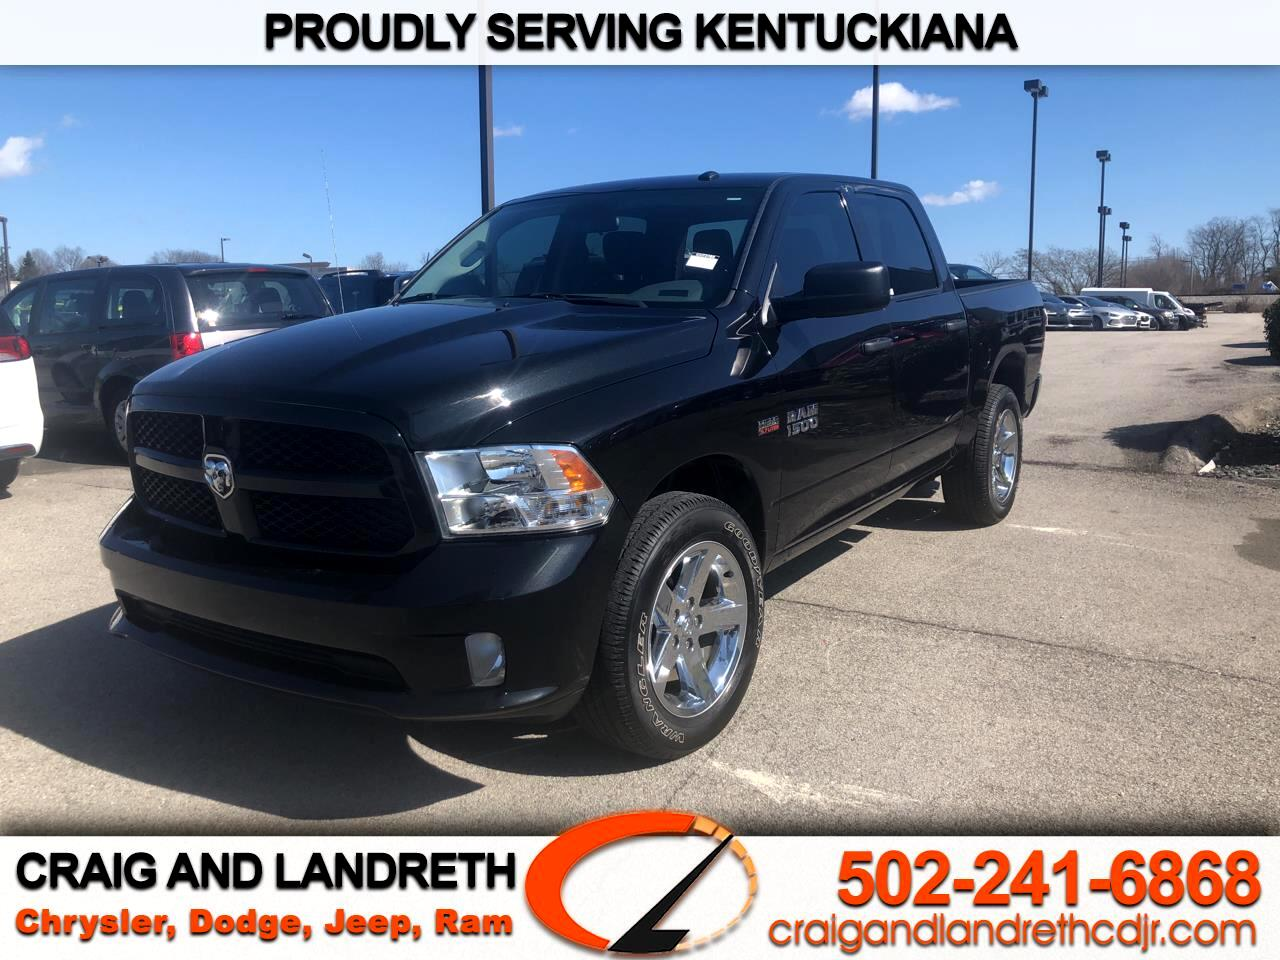 Pre-Owned 2017 RAM 1500 Express 4x4 Crew Cab 5 ft7 in Box